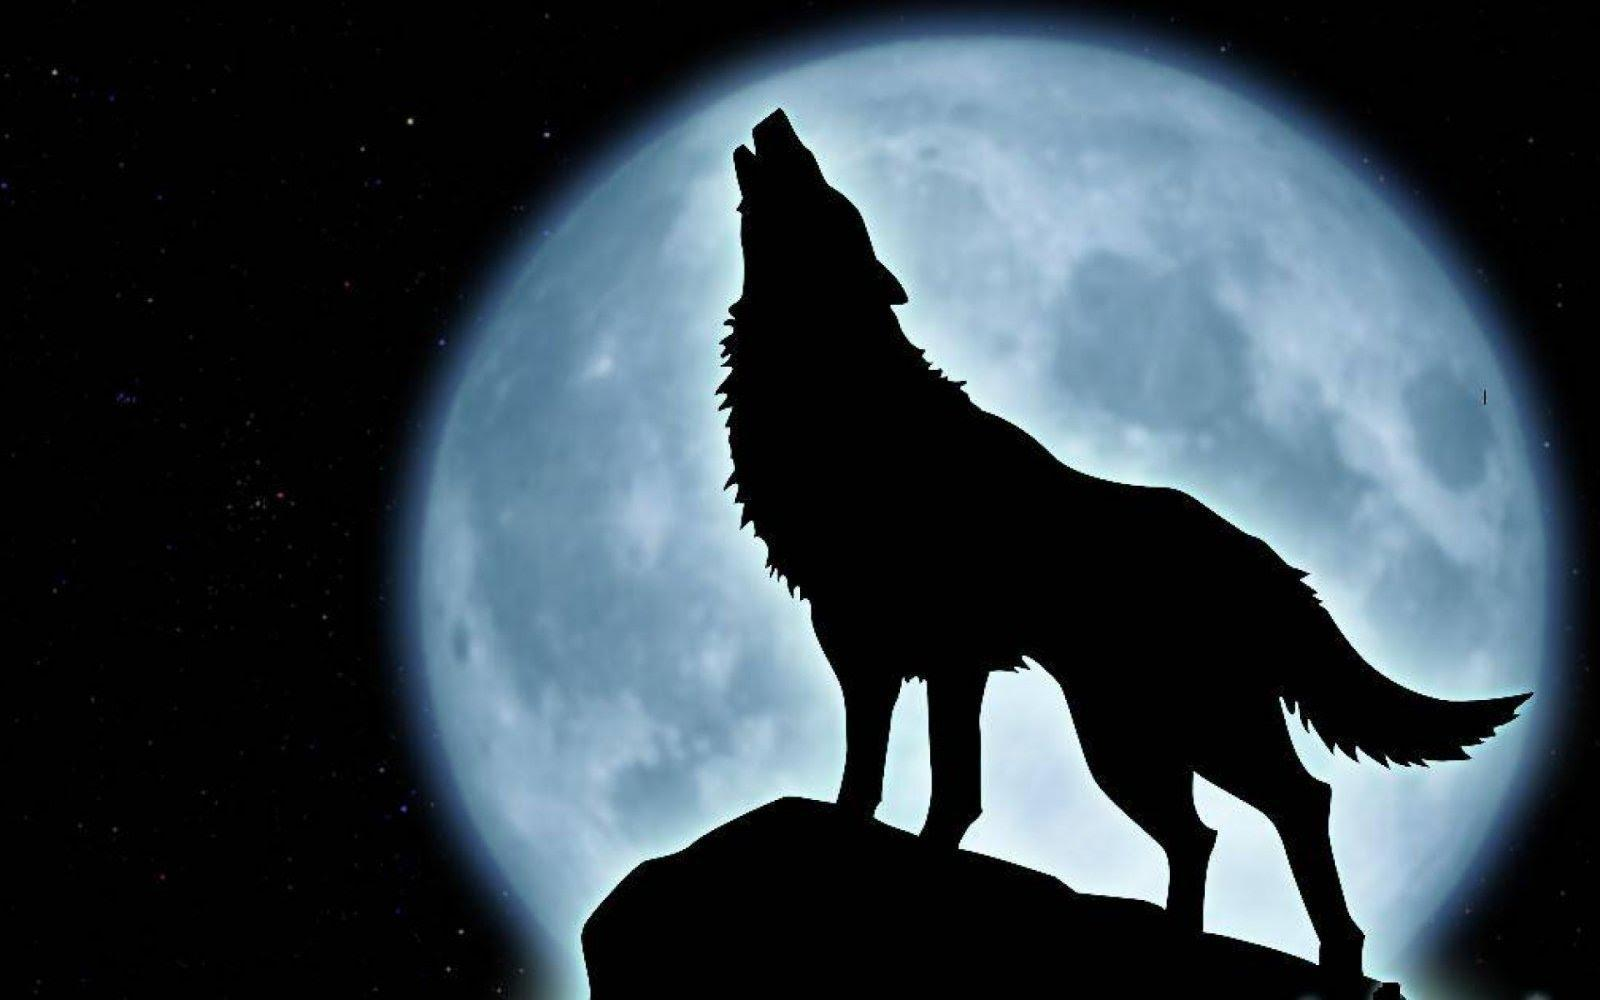 You hear a howl, find the howler. He/she is the most gorgeous you have ever seen. What do you do?